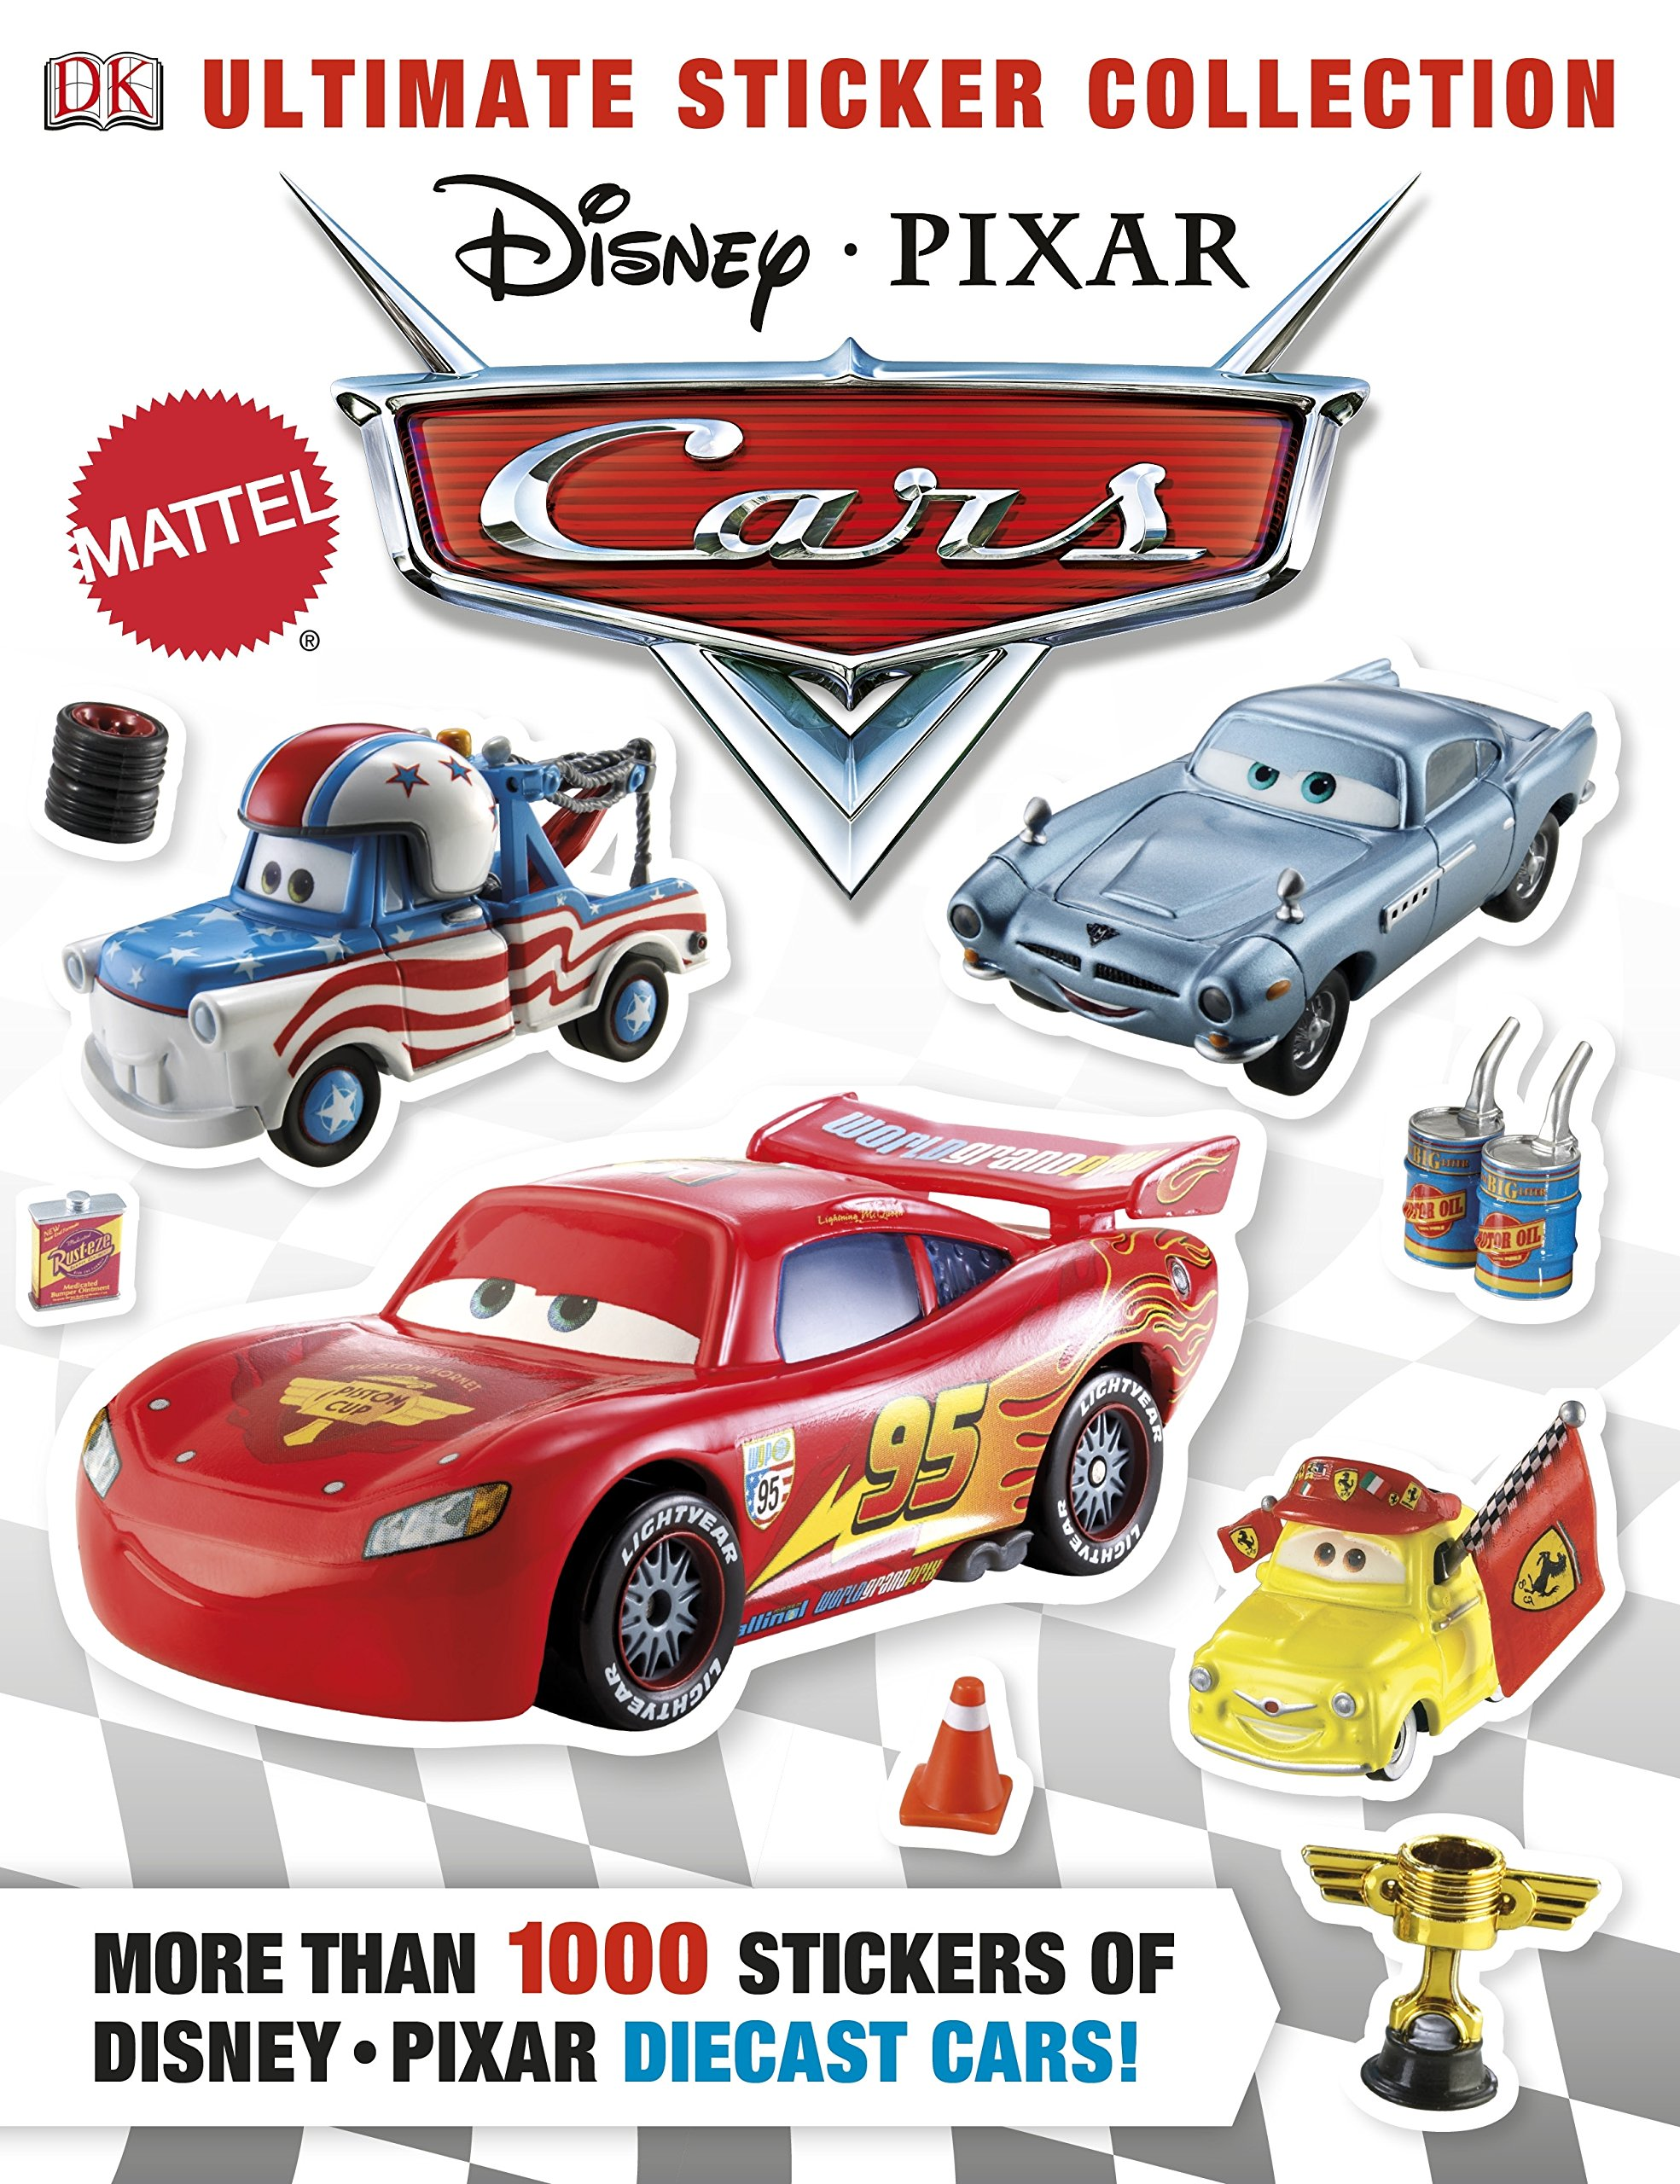 Ultimate Sticker Collection: Disney Pixar Cars (Ultimate Sticker Collections) by DK Publishing Dorling Kindersley (Image #2)